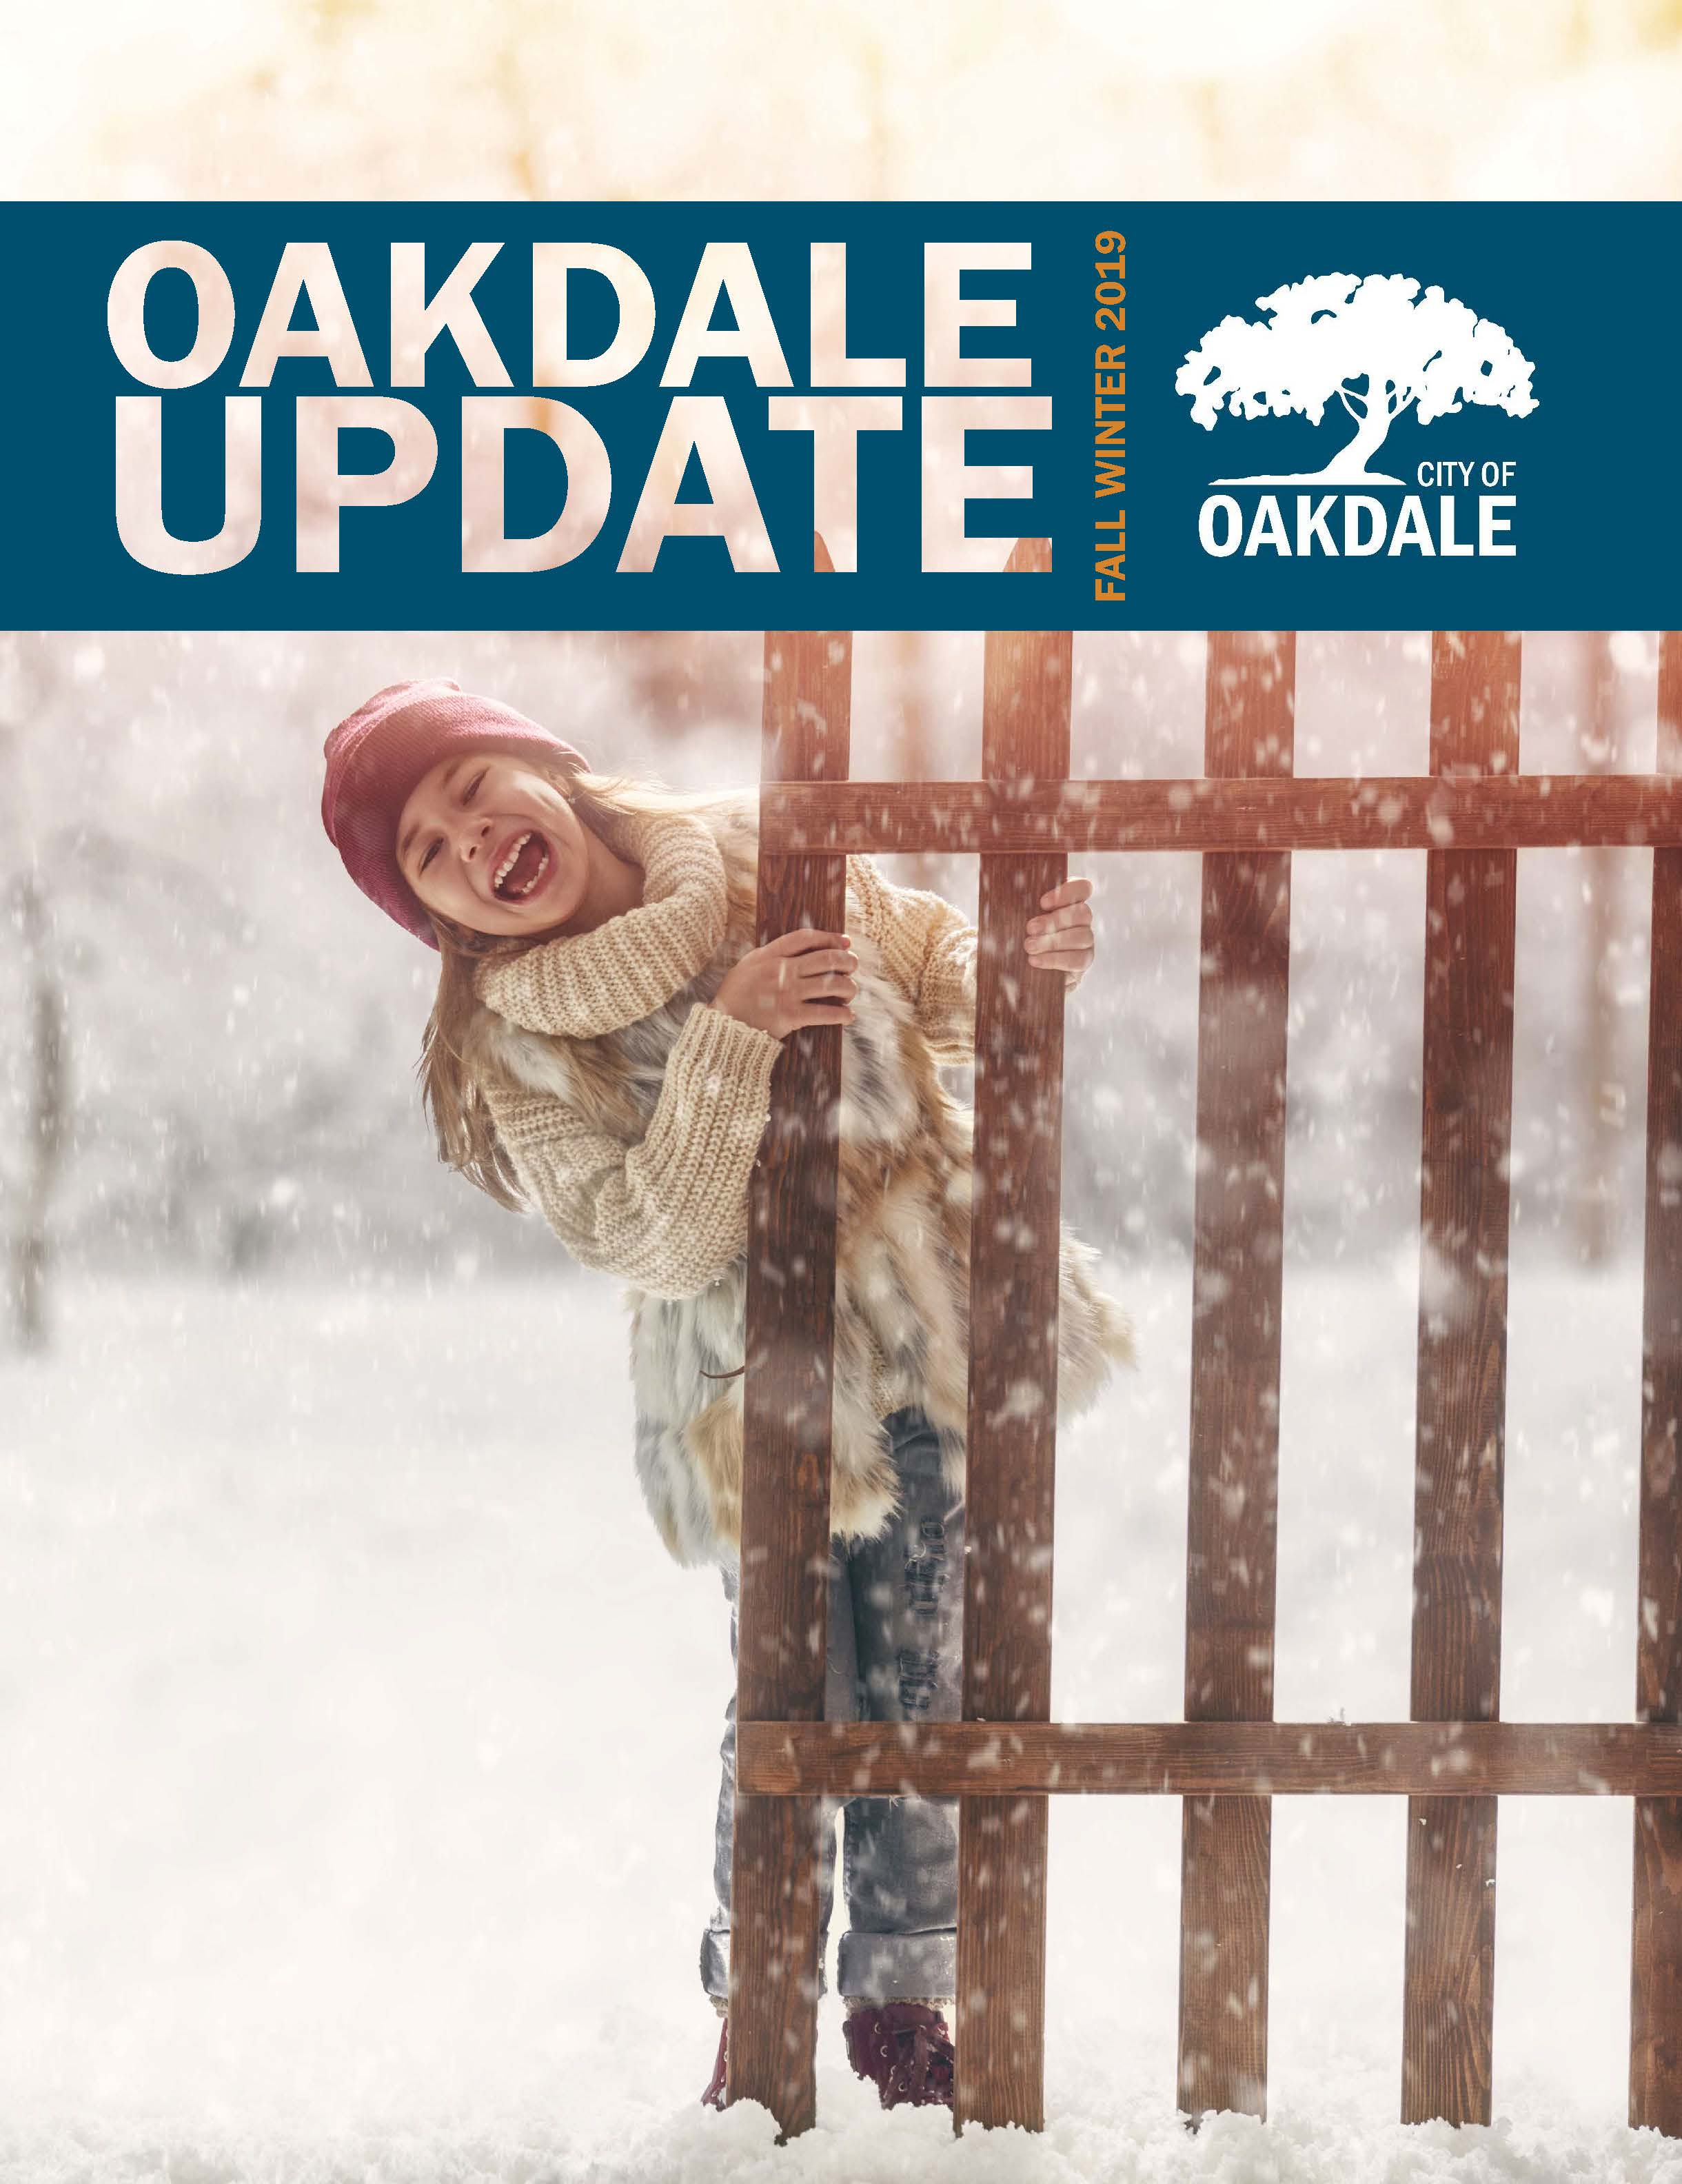 Oakdale Update Newsletter Cover with girl in snow